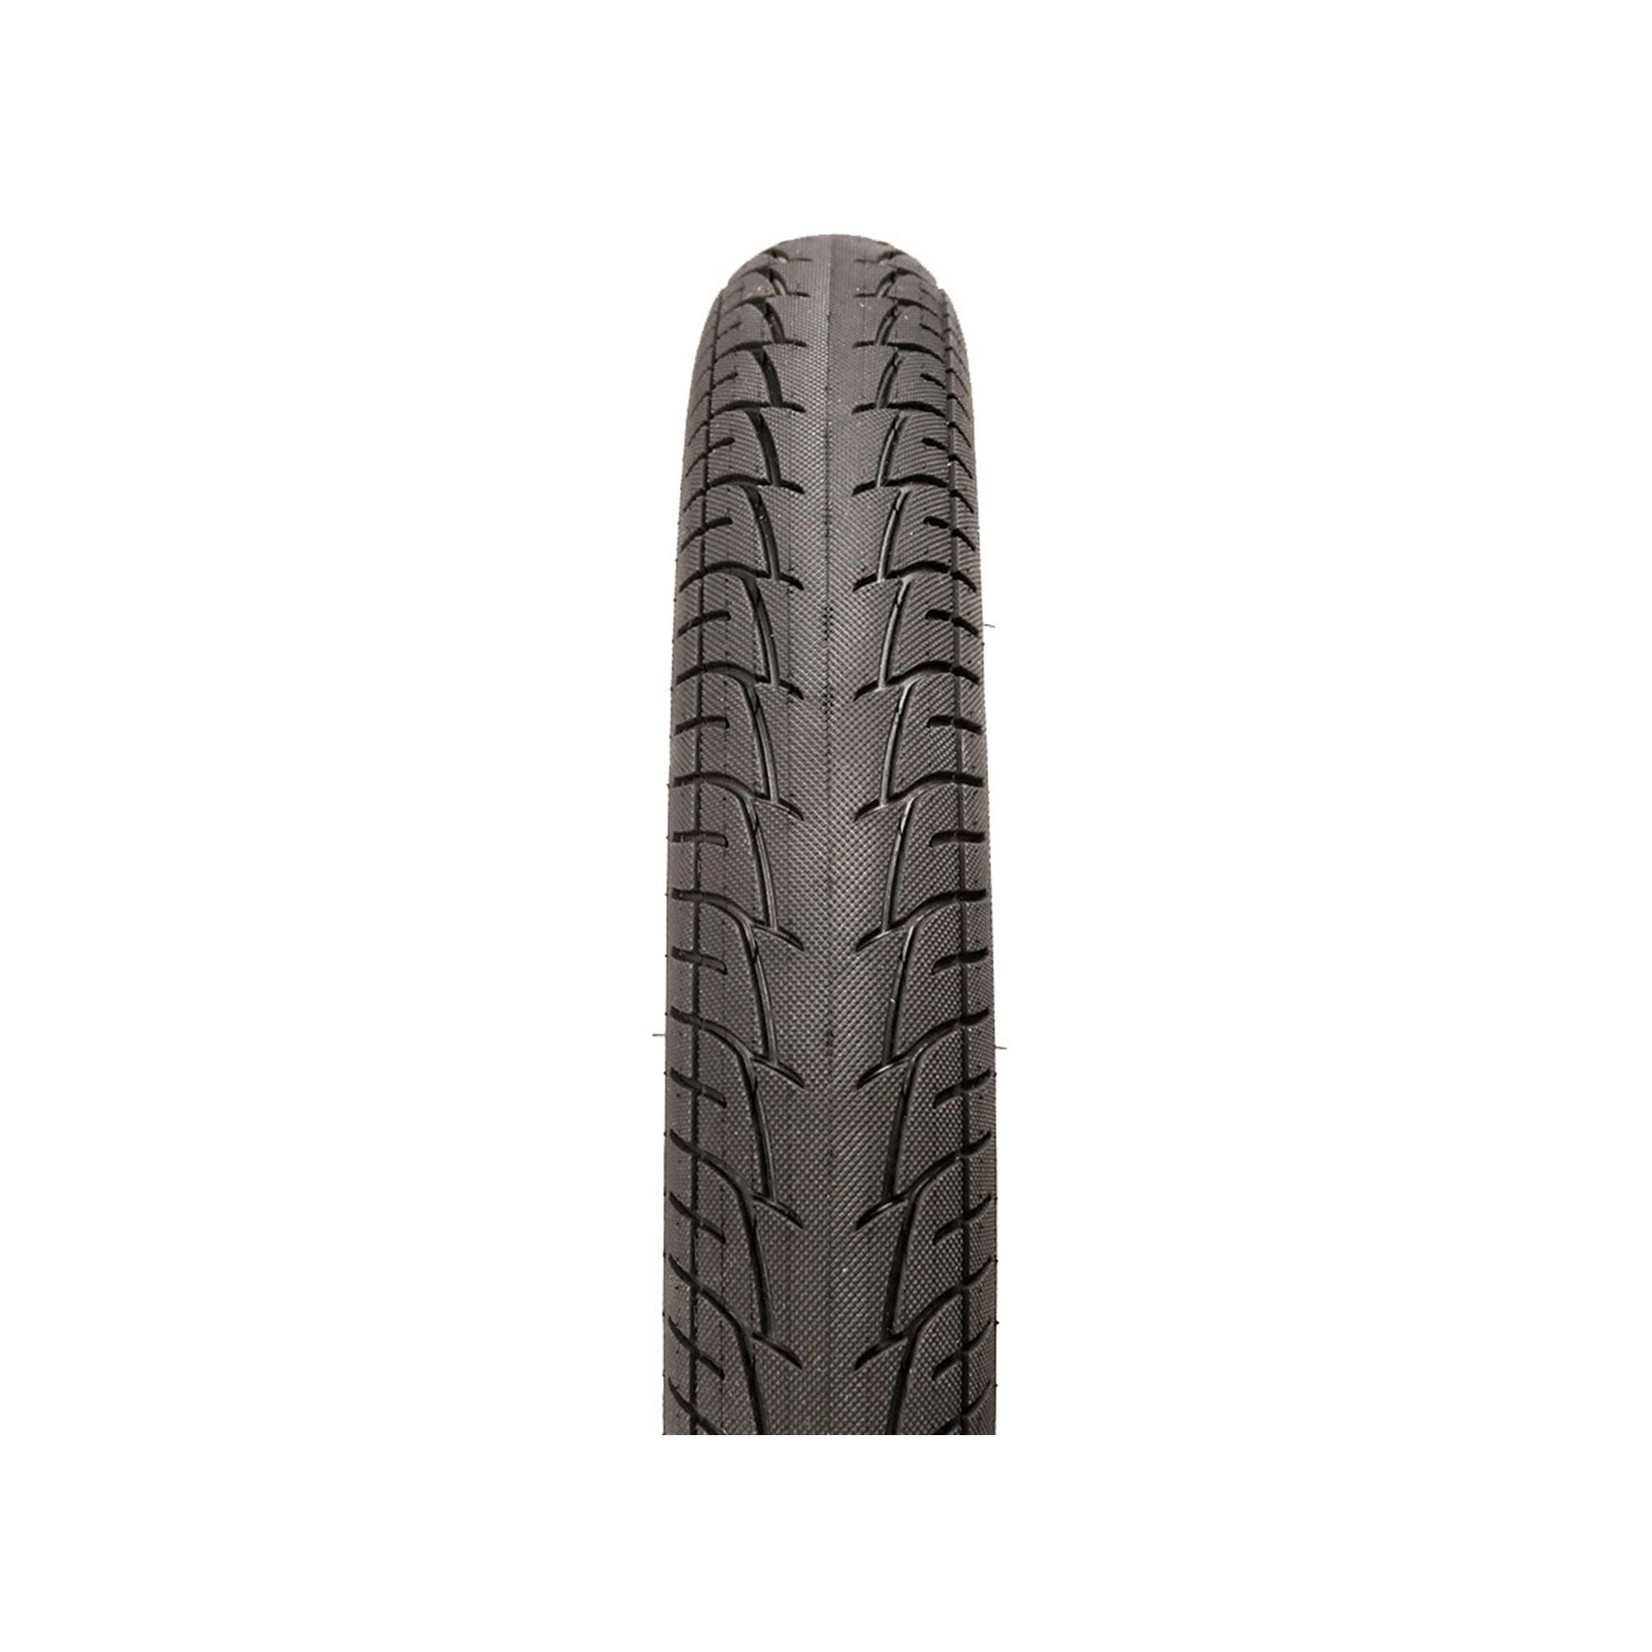 FITBIKECO 14 x 2.1 Smooth Tyre